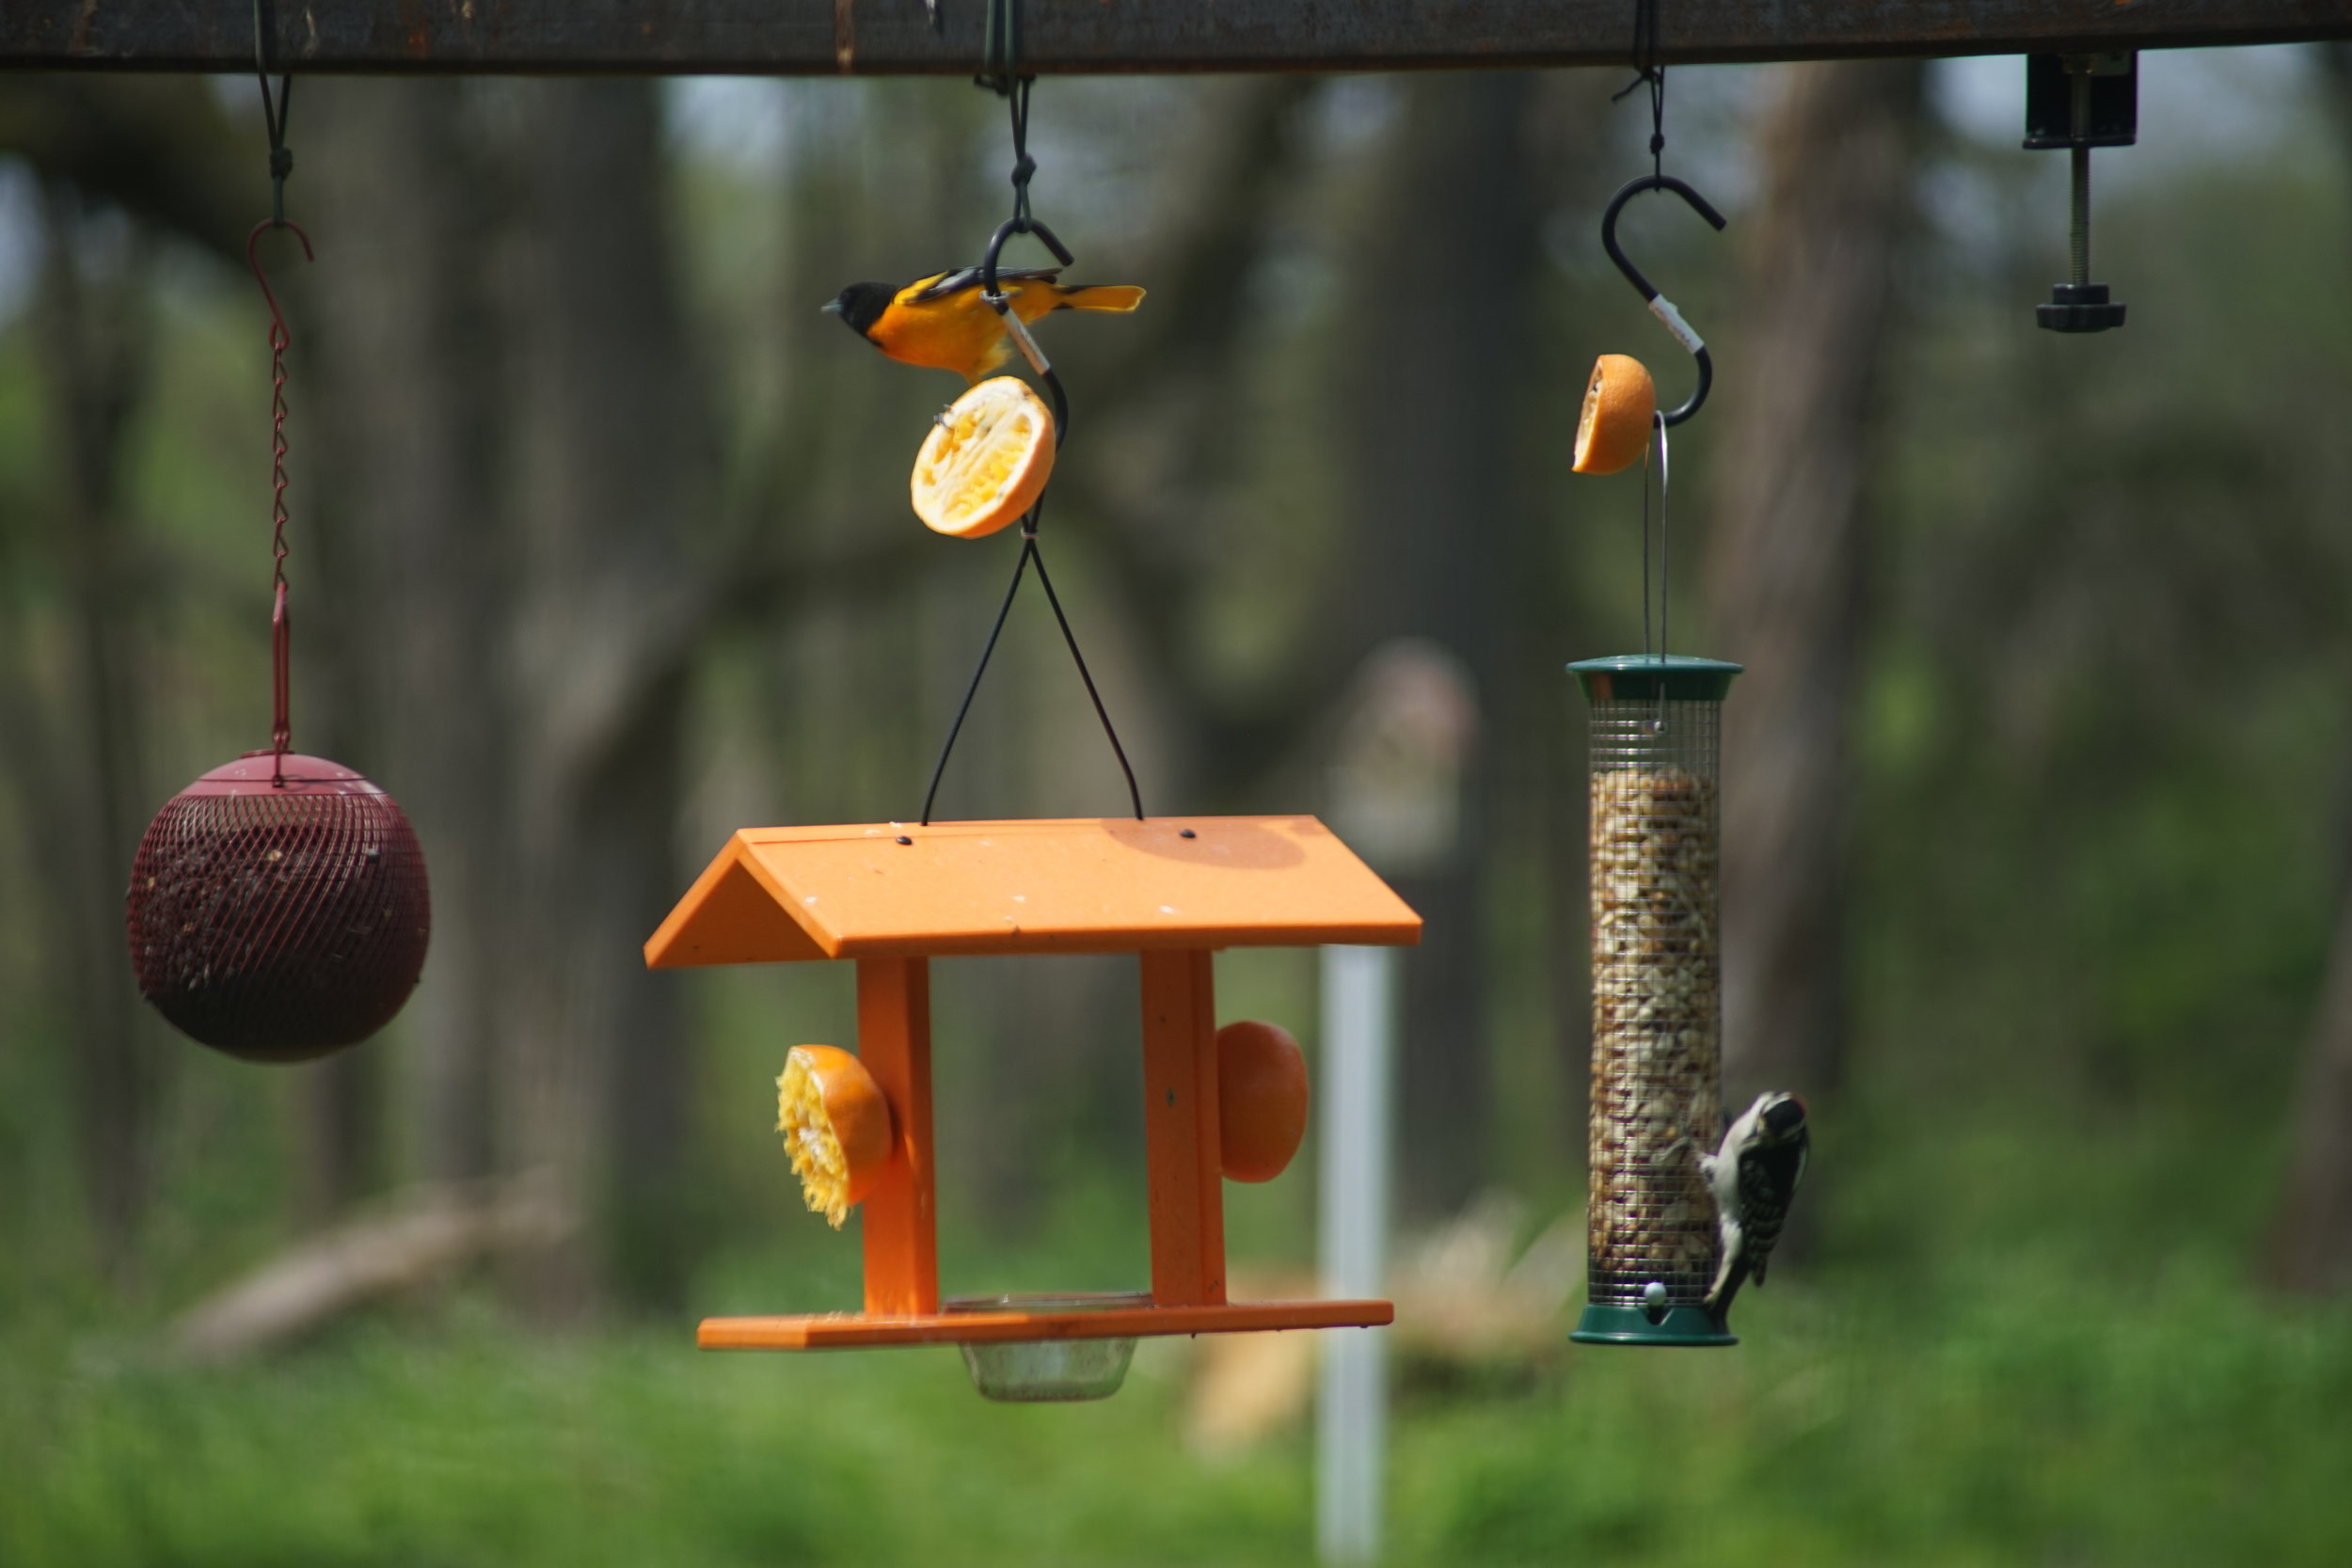 A Baltimore oriole visits the bird feeders at Severson Dells.